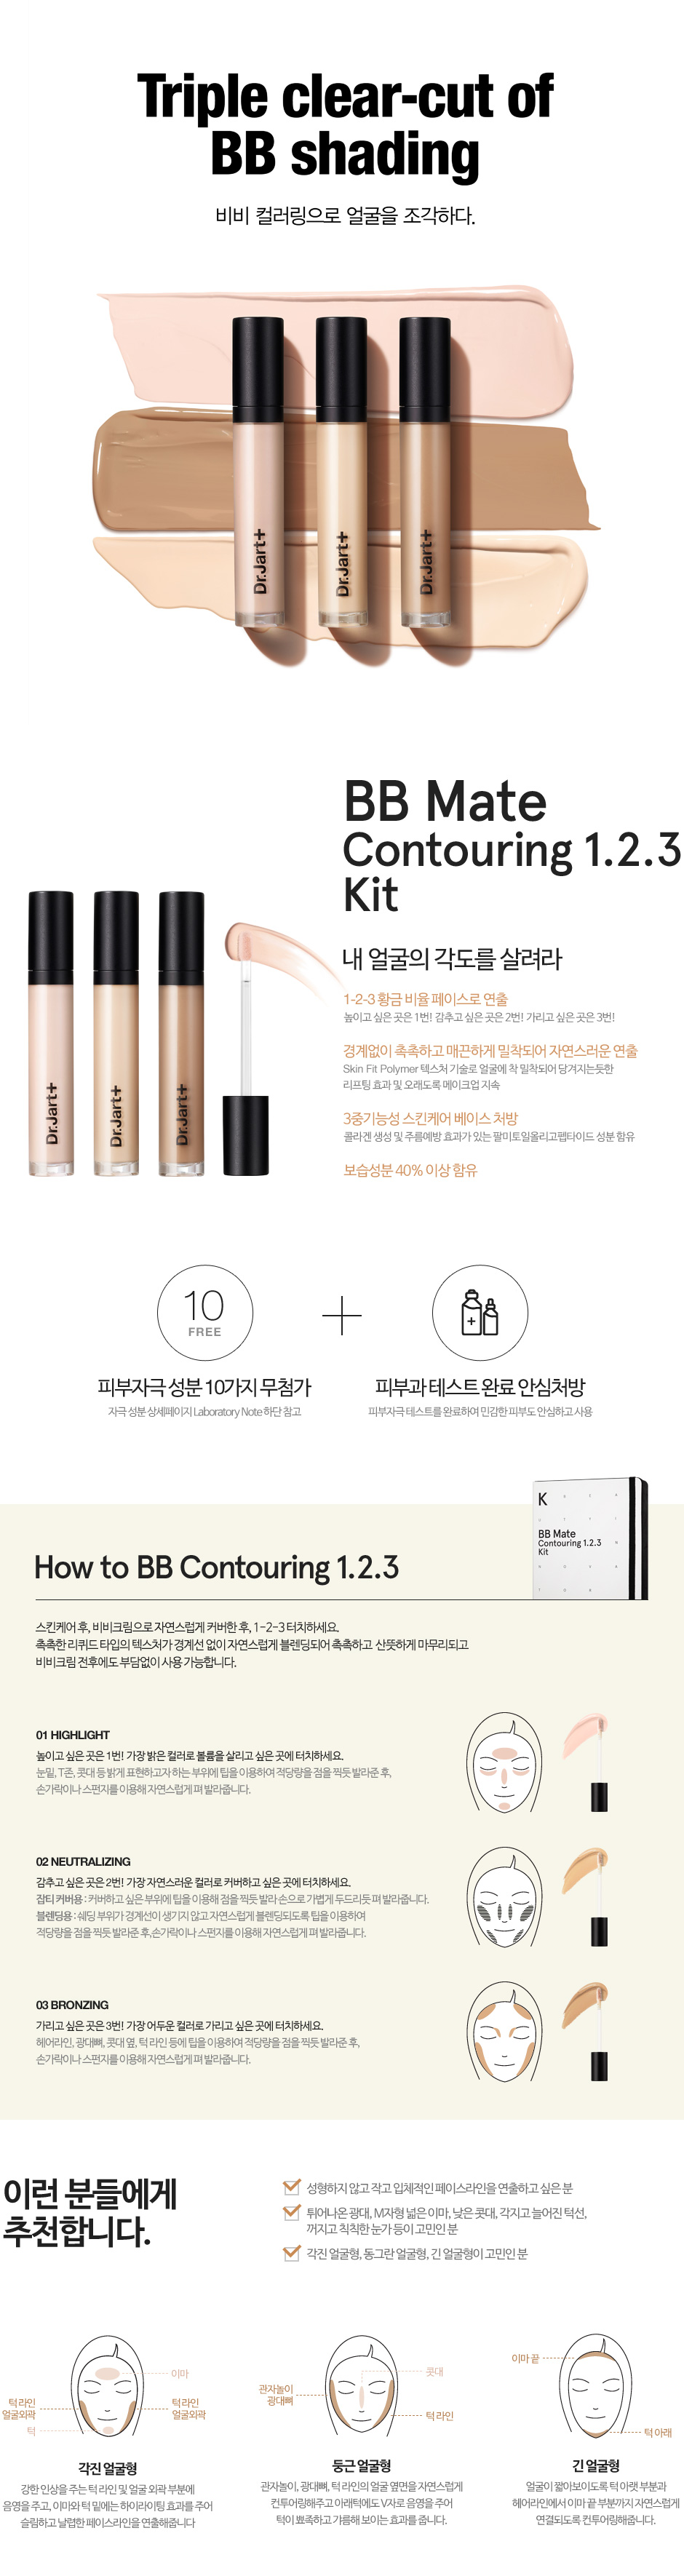 BB Mate Contouring 1.2.3. Kit by Dr Jart+ #14